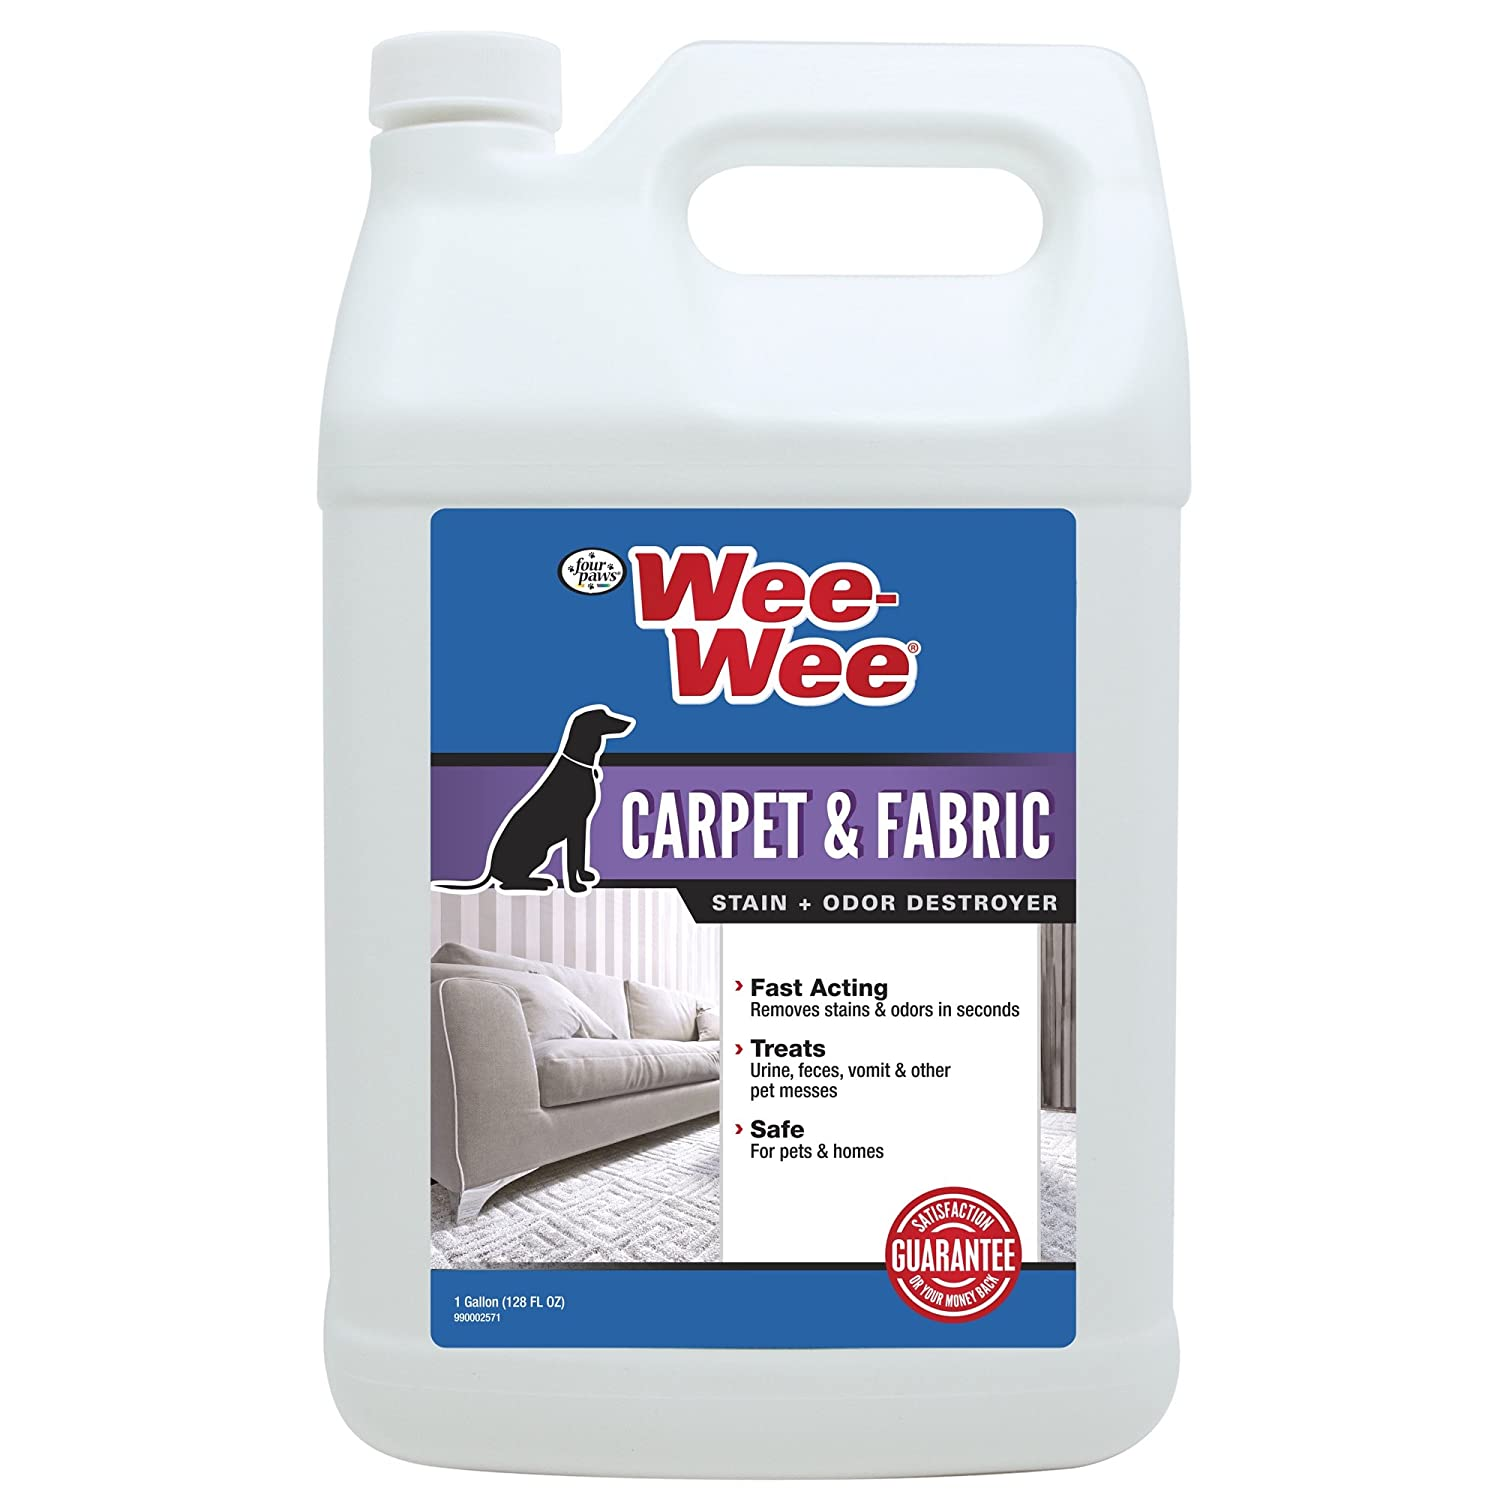 Four Paws Wee-Wee Pet Stain and Odor Remover Carpet & Fabric 32 oz Central Pet Four Paws 100524779